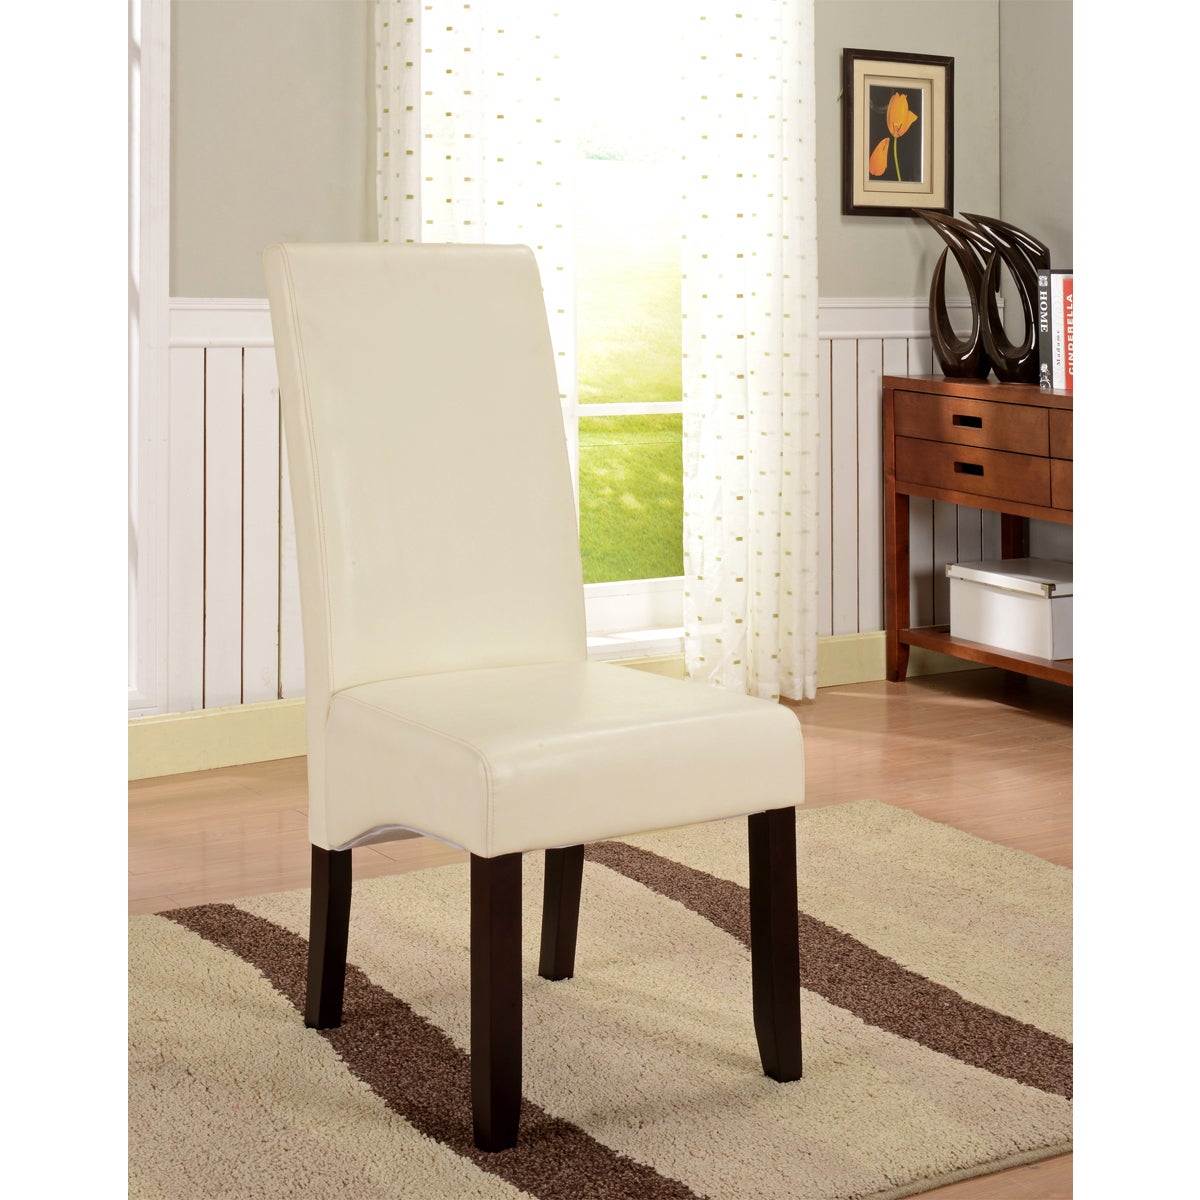 K&B Cream Leatherette Parson Chairs (Set of 2) (Set of 2 ...